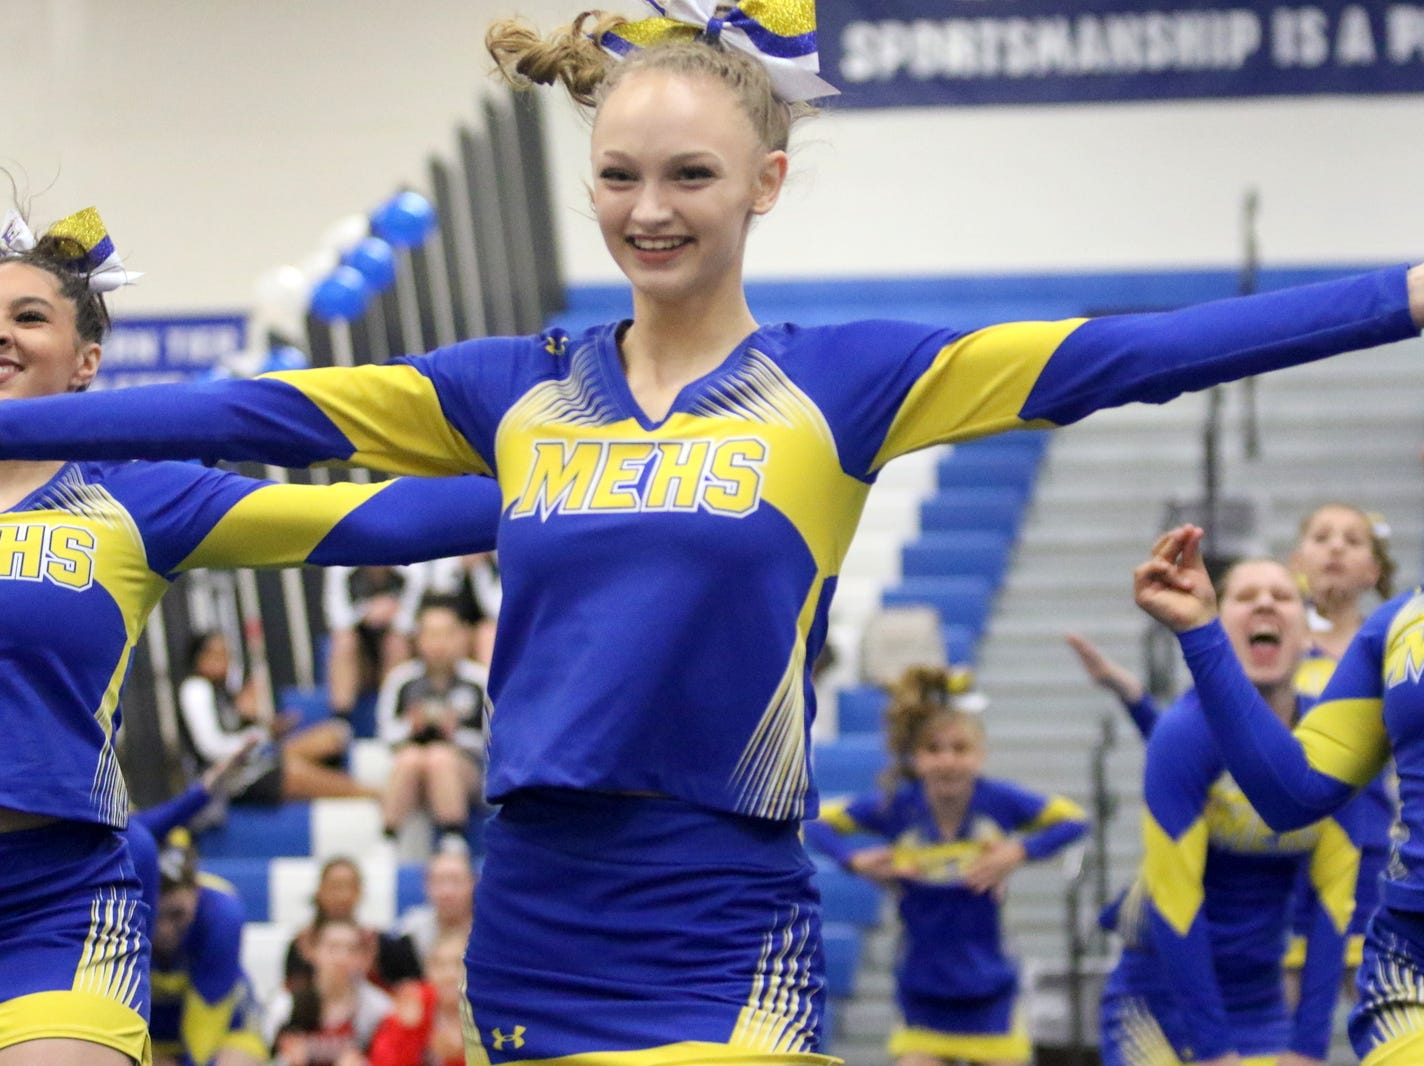 Maine-Endwell varsity cheerleaders compete at the STAC Winter Cheer Championships on Feb. 16, 2019 at Horseheads Middle School.